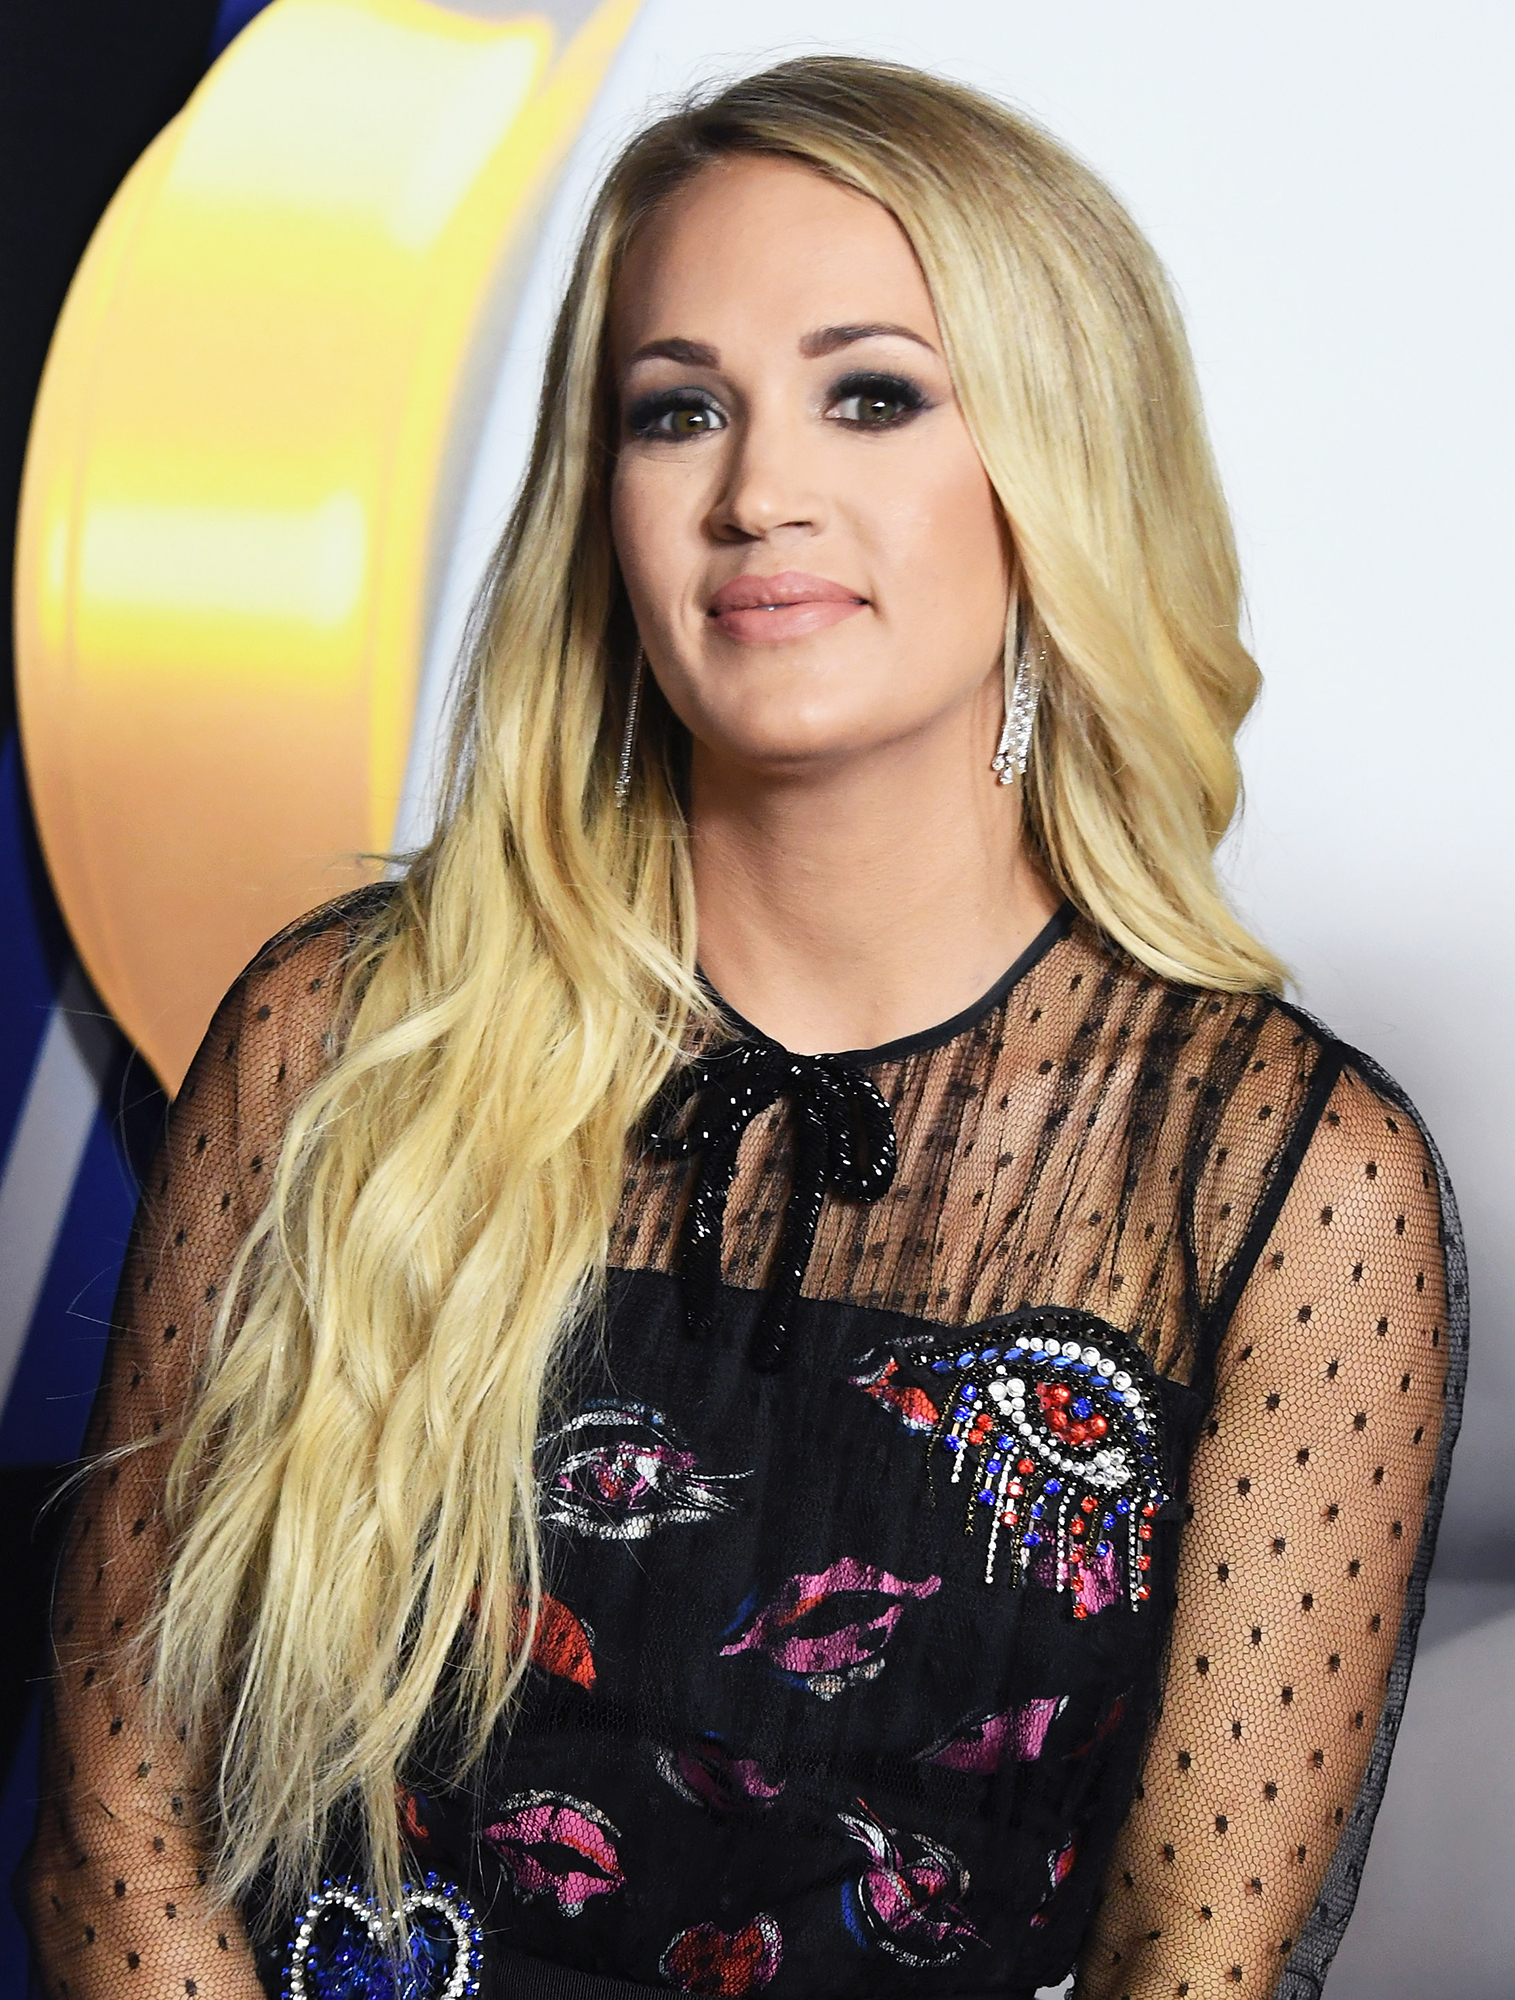 Carrie Underwood Laments Gym Difficulties: After Baby No. 2, 'My Body Has Not Belonged to Me' - Carrie Underwood